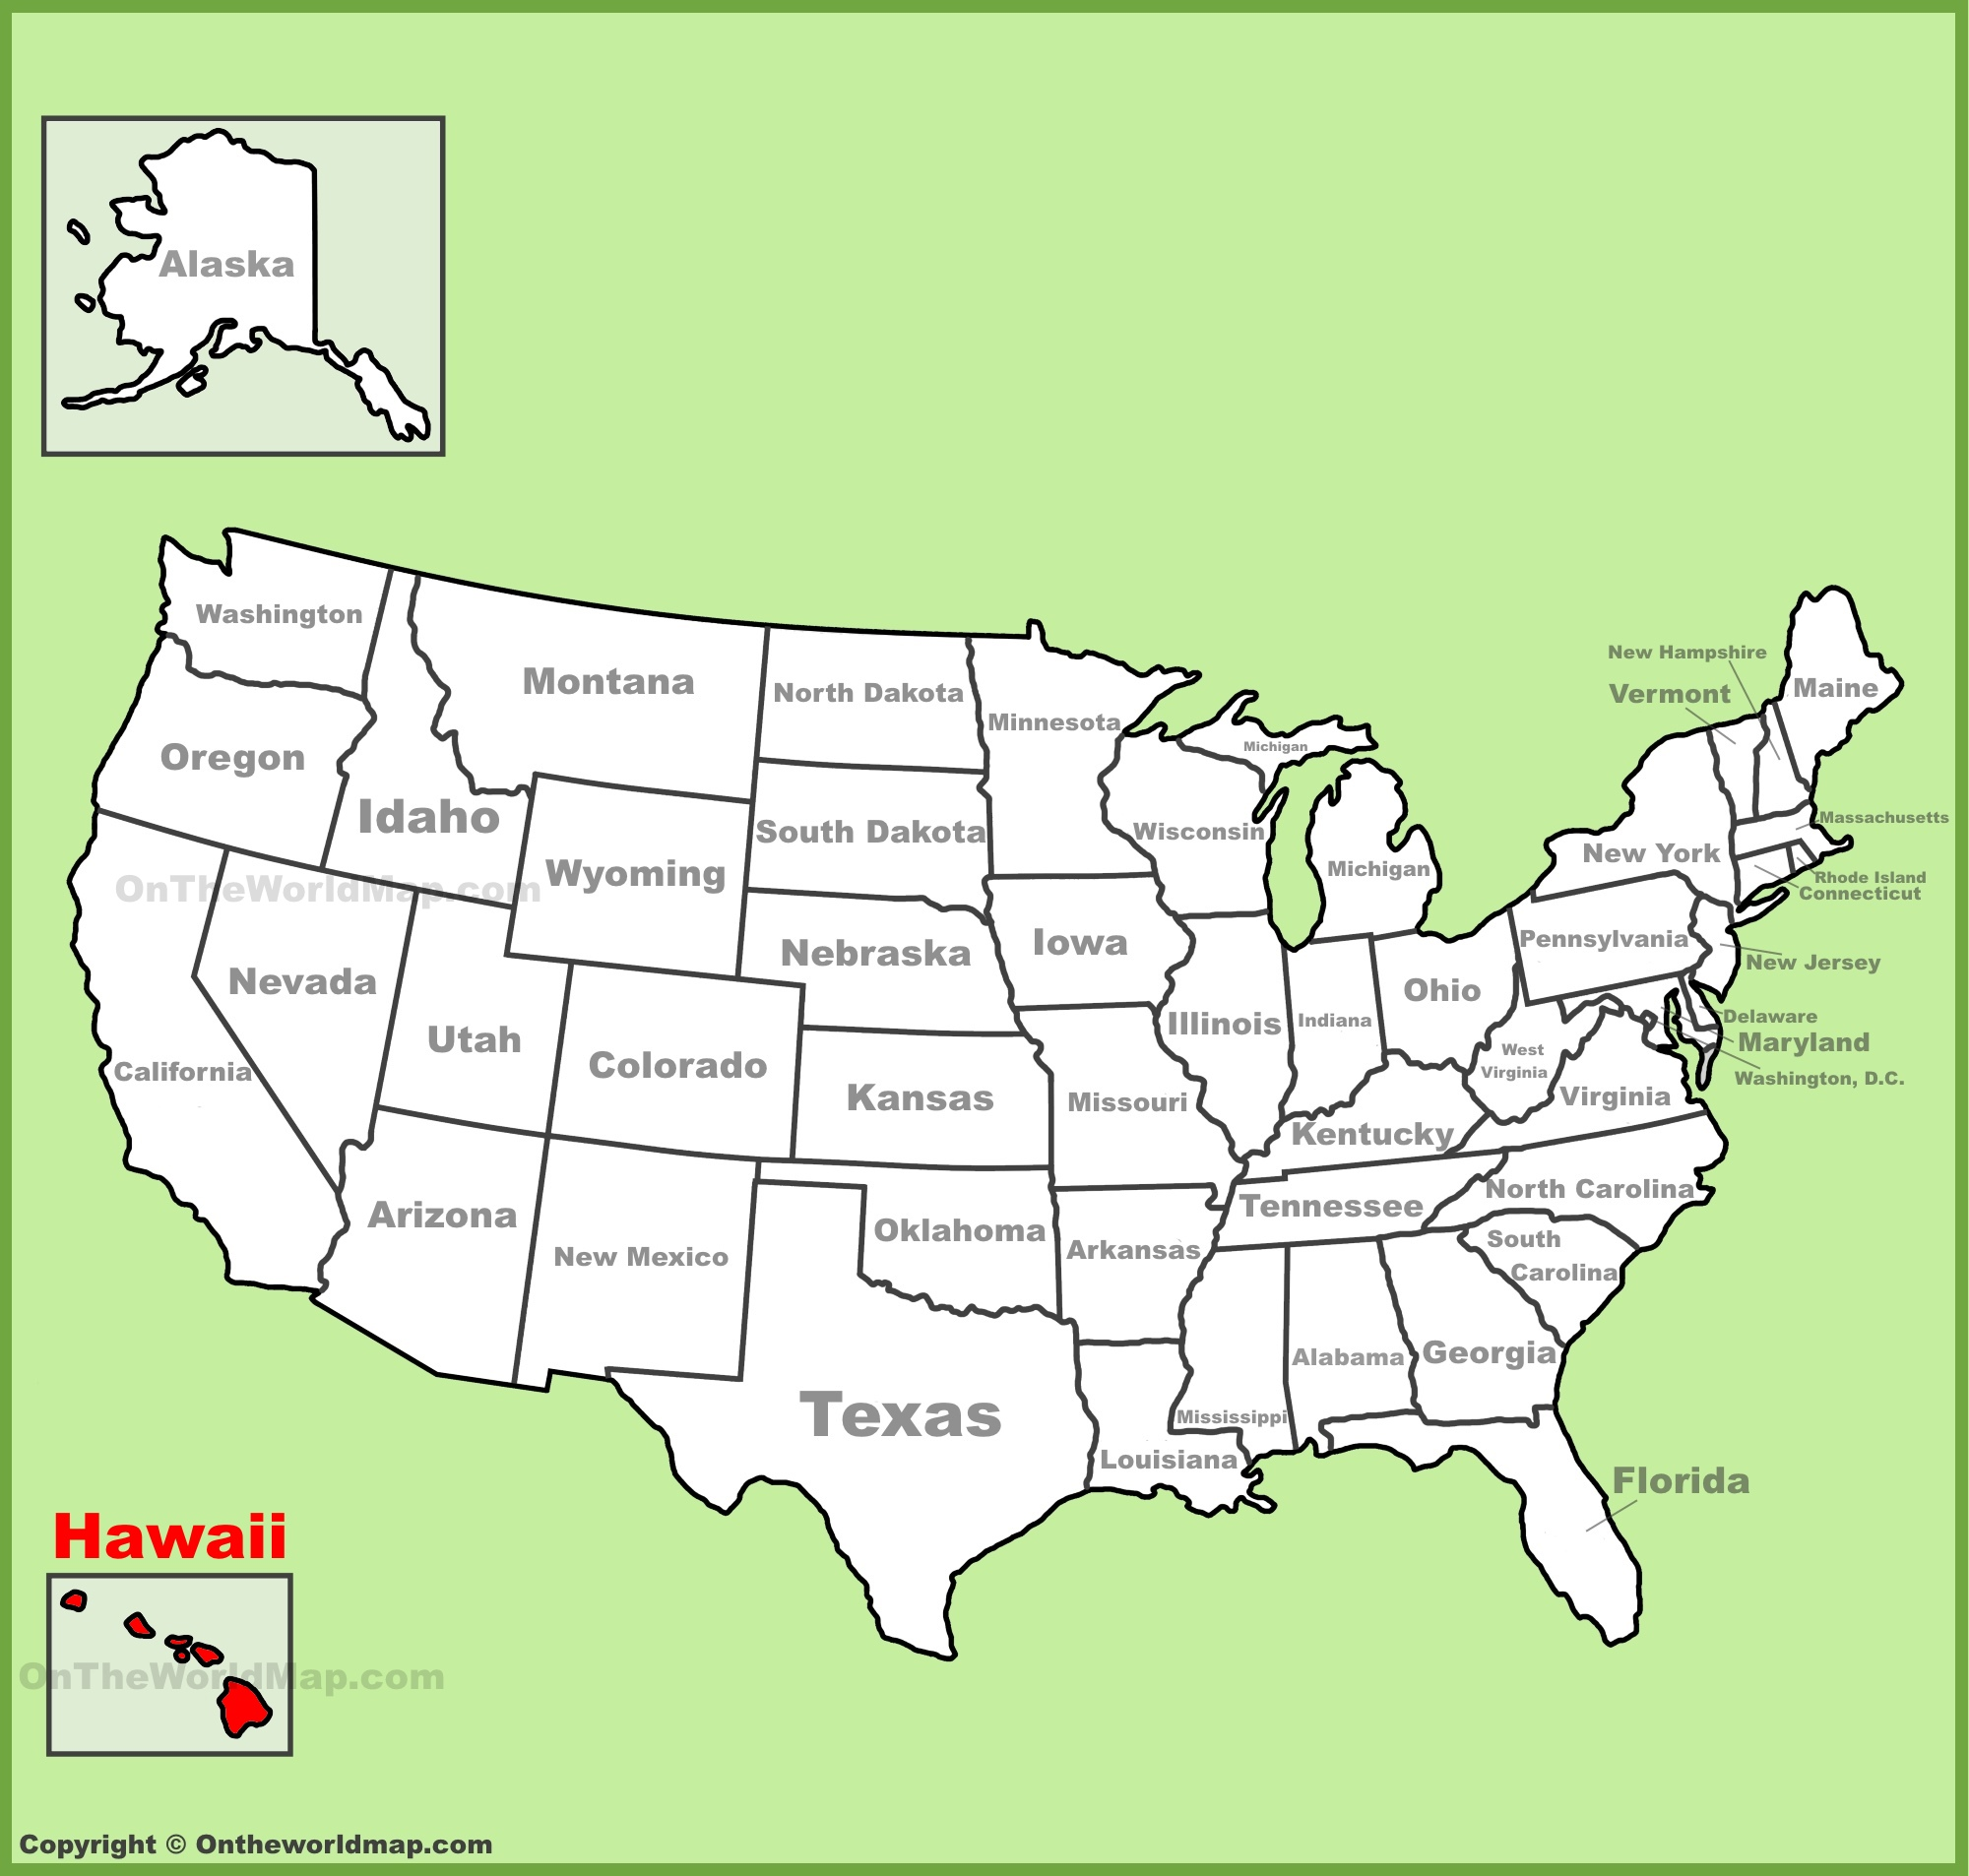 Hawaii On The Map Hawaii State Maps | USA | Maps of Hawaii (Hawaiian Islands)